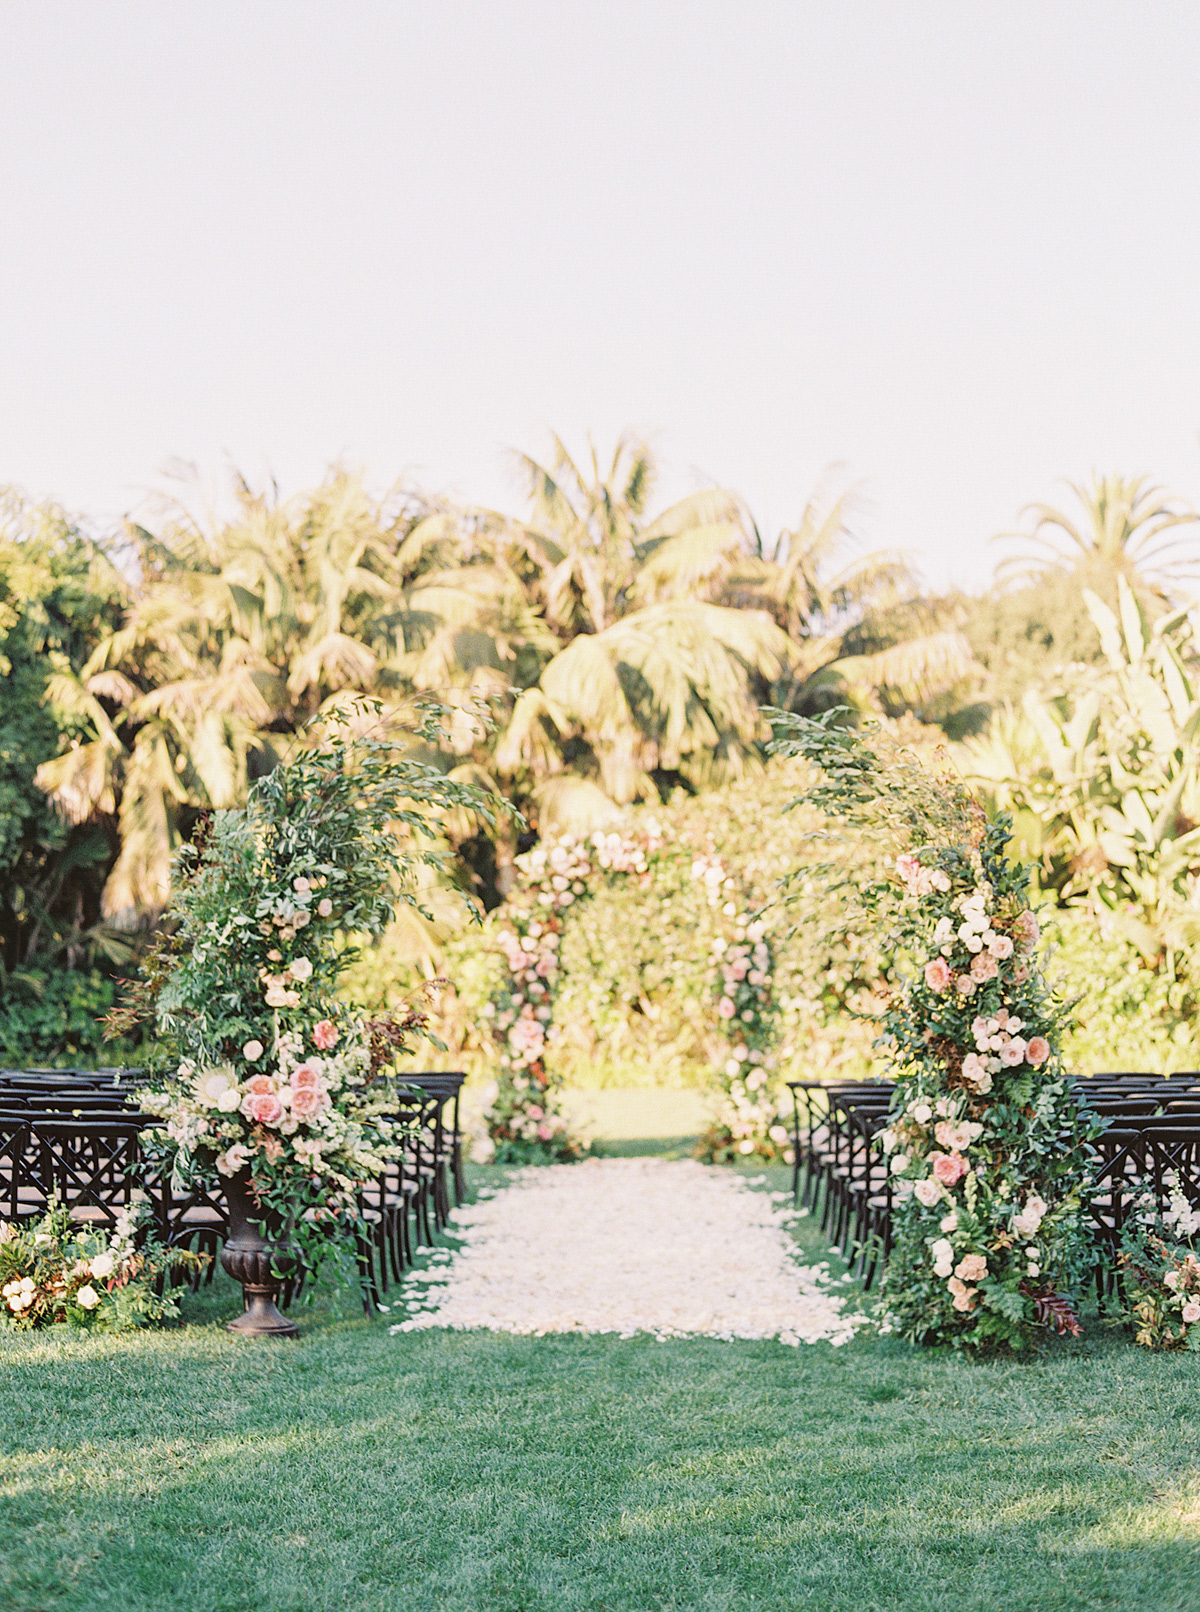 corey evan wedding floral arch at outdoor ceremony on lawn